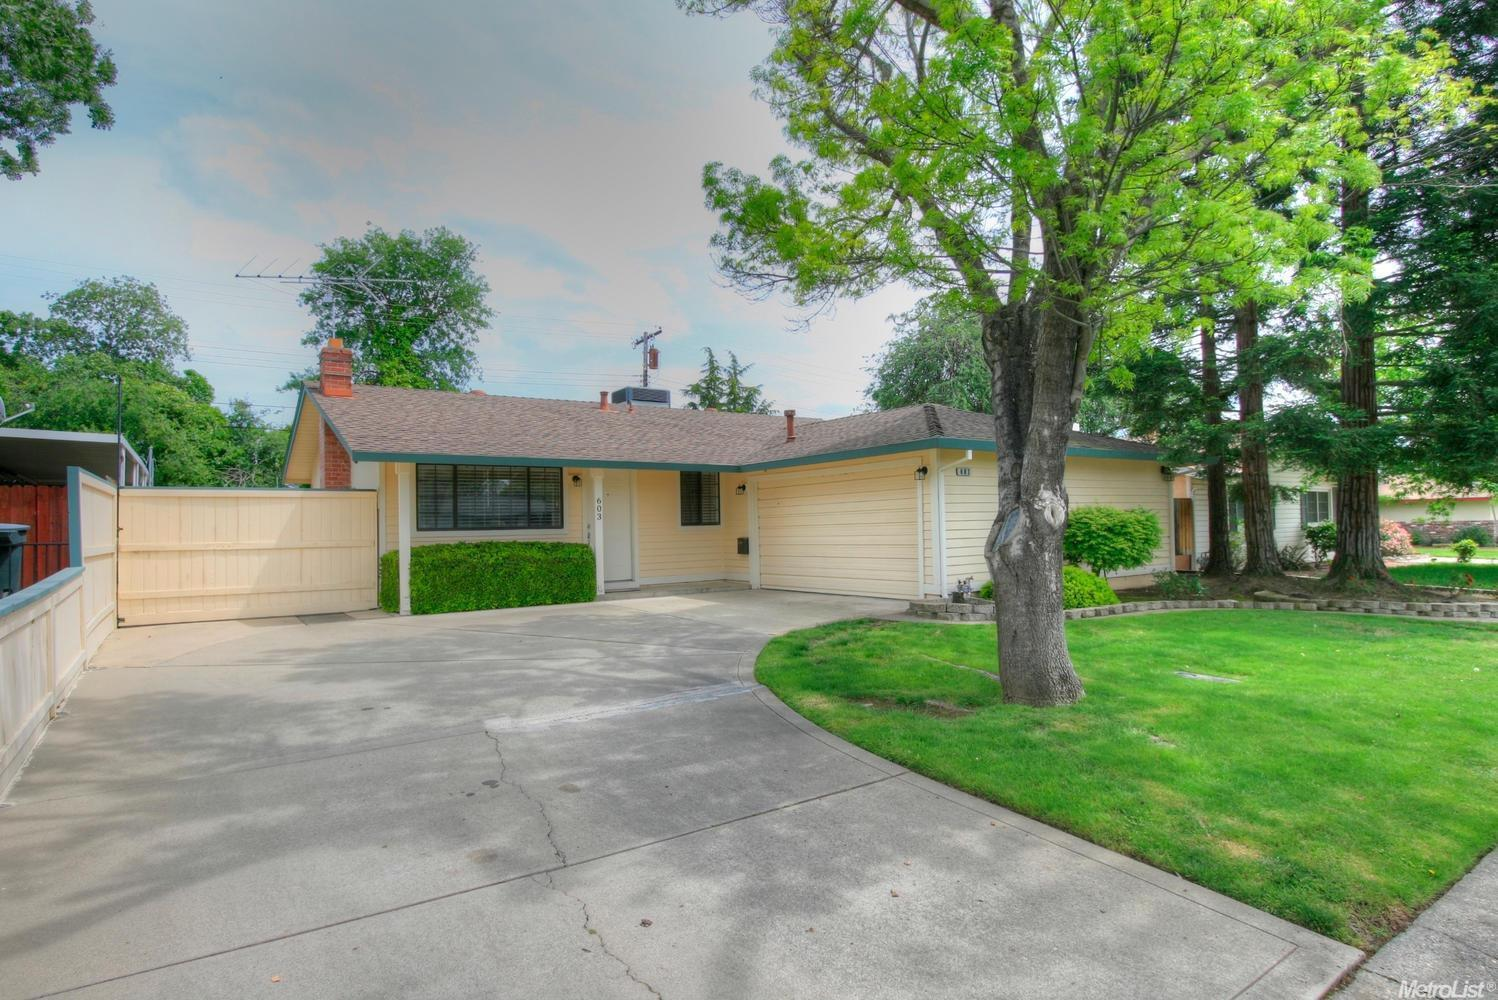 East Roseville home in contract | Roseville California real estate agent Jesse Coffey